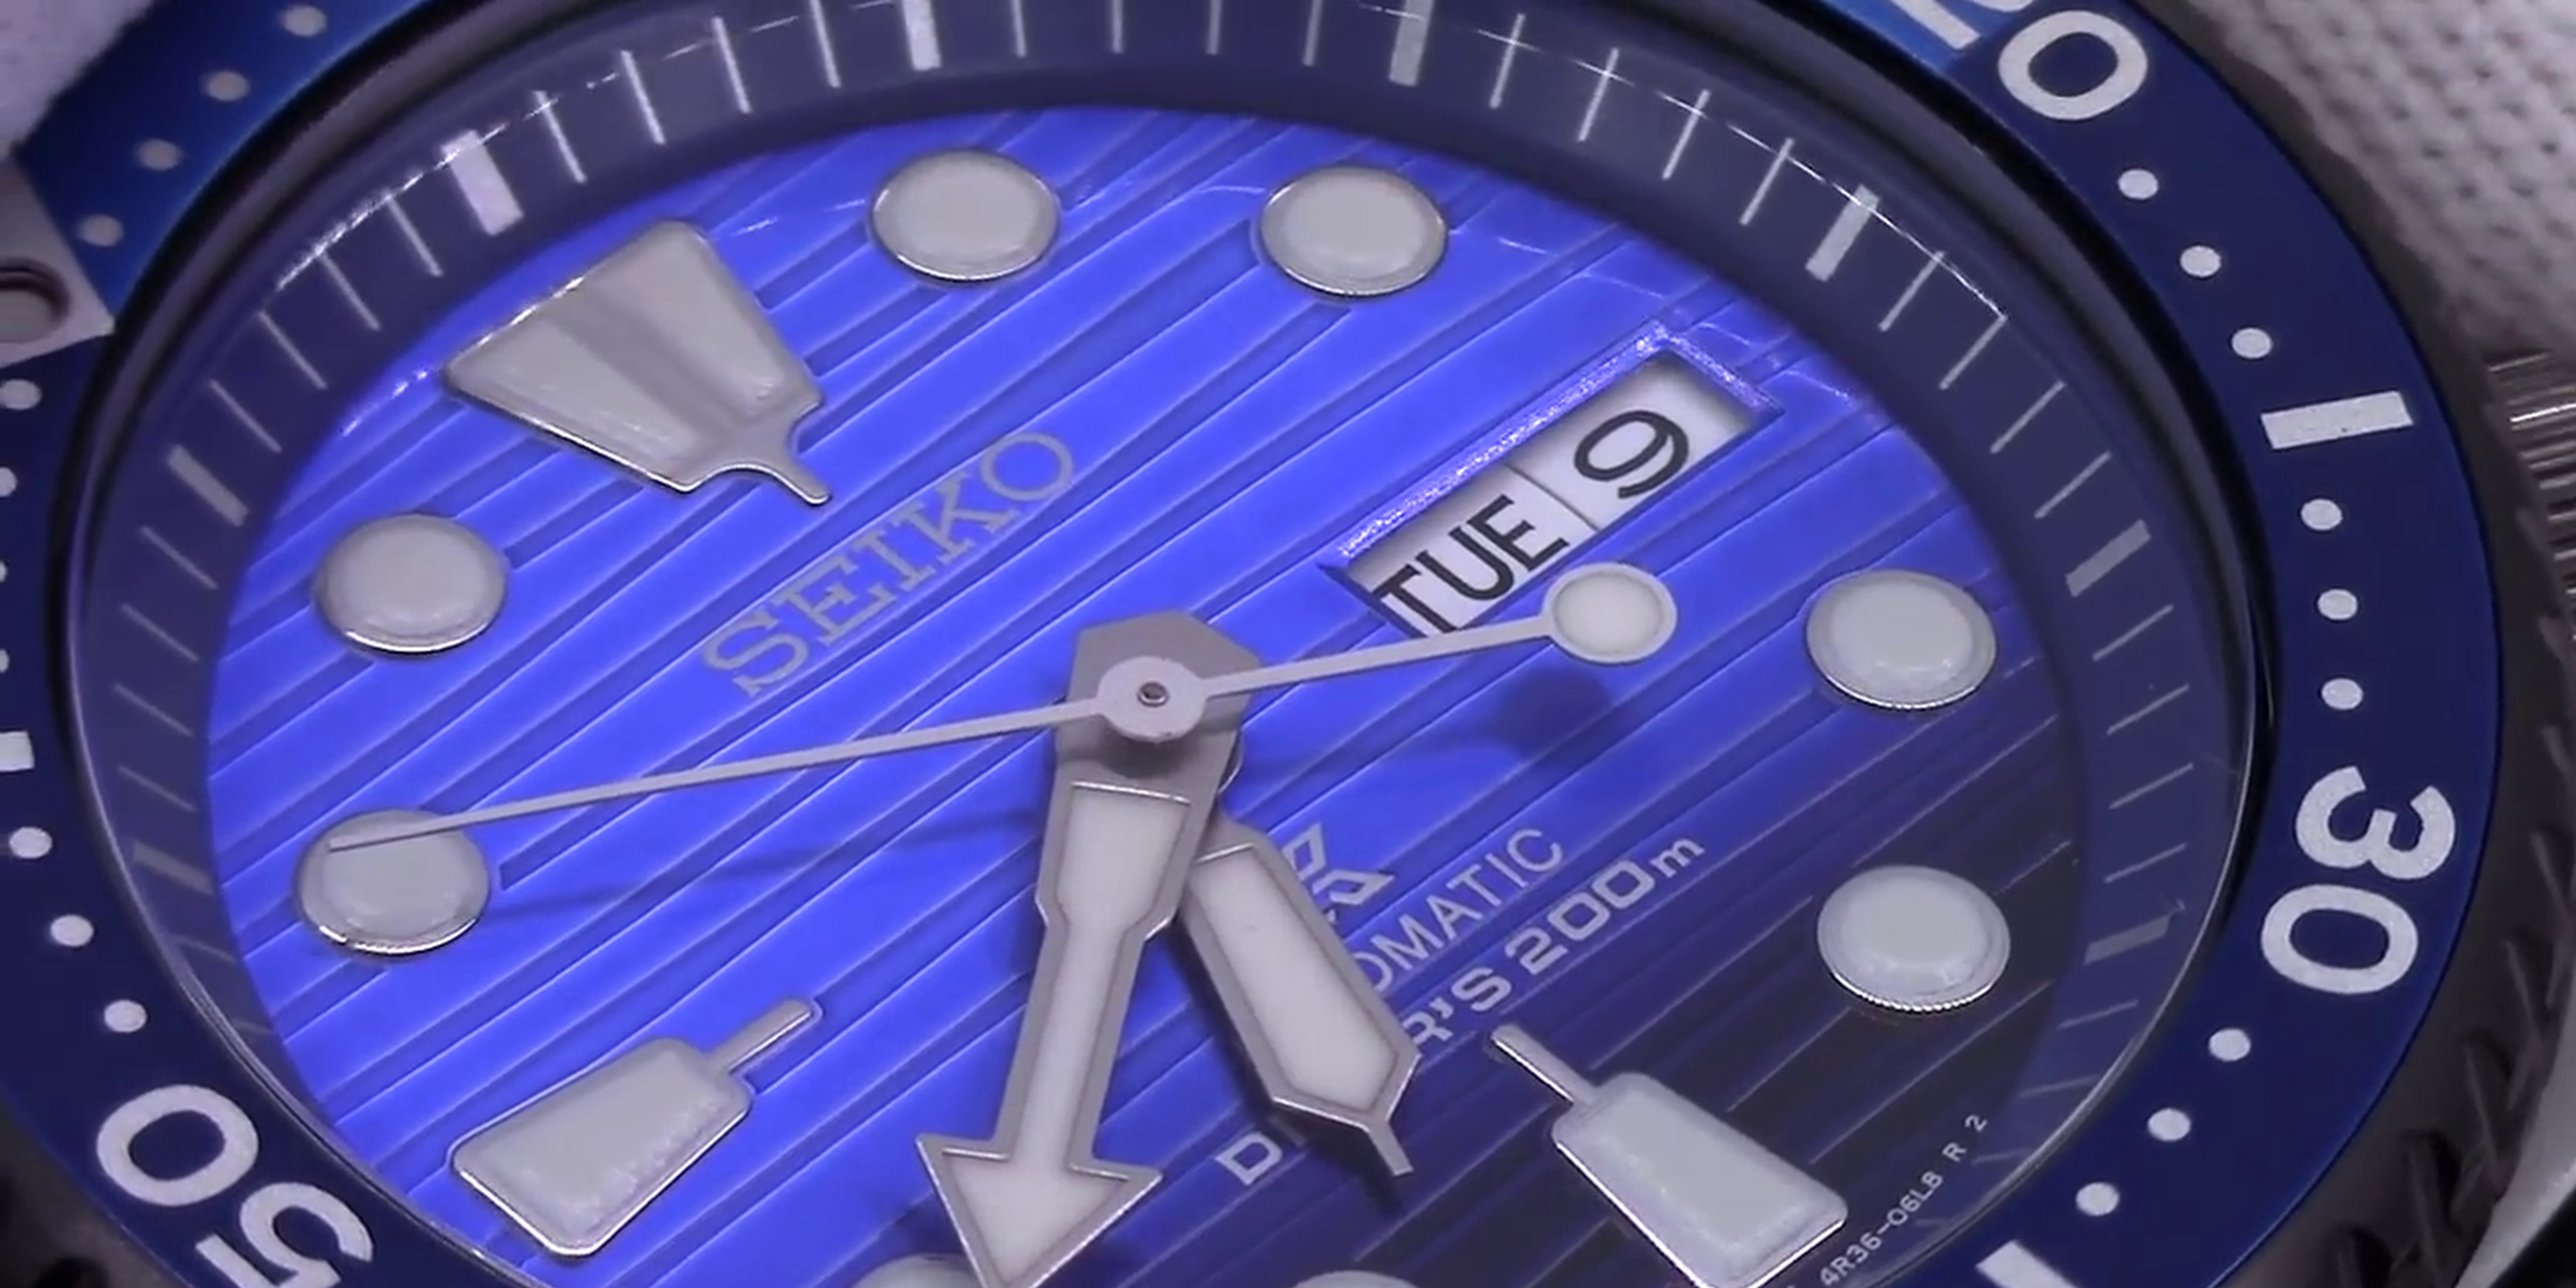 seiko-prospex-save-the-ocean-samurai.jpg